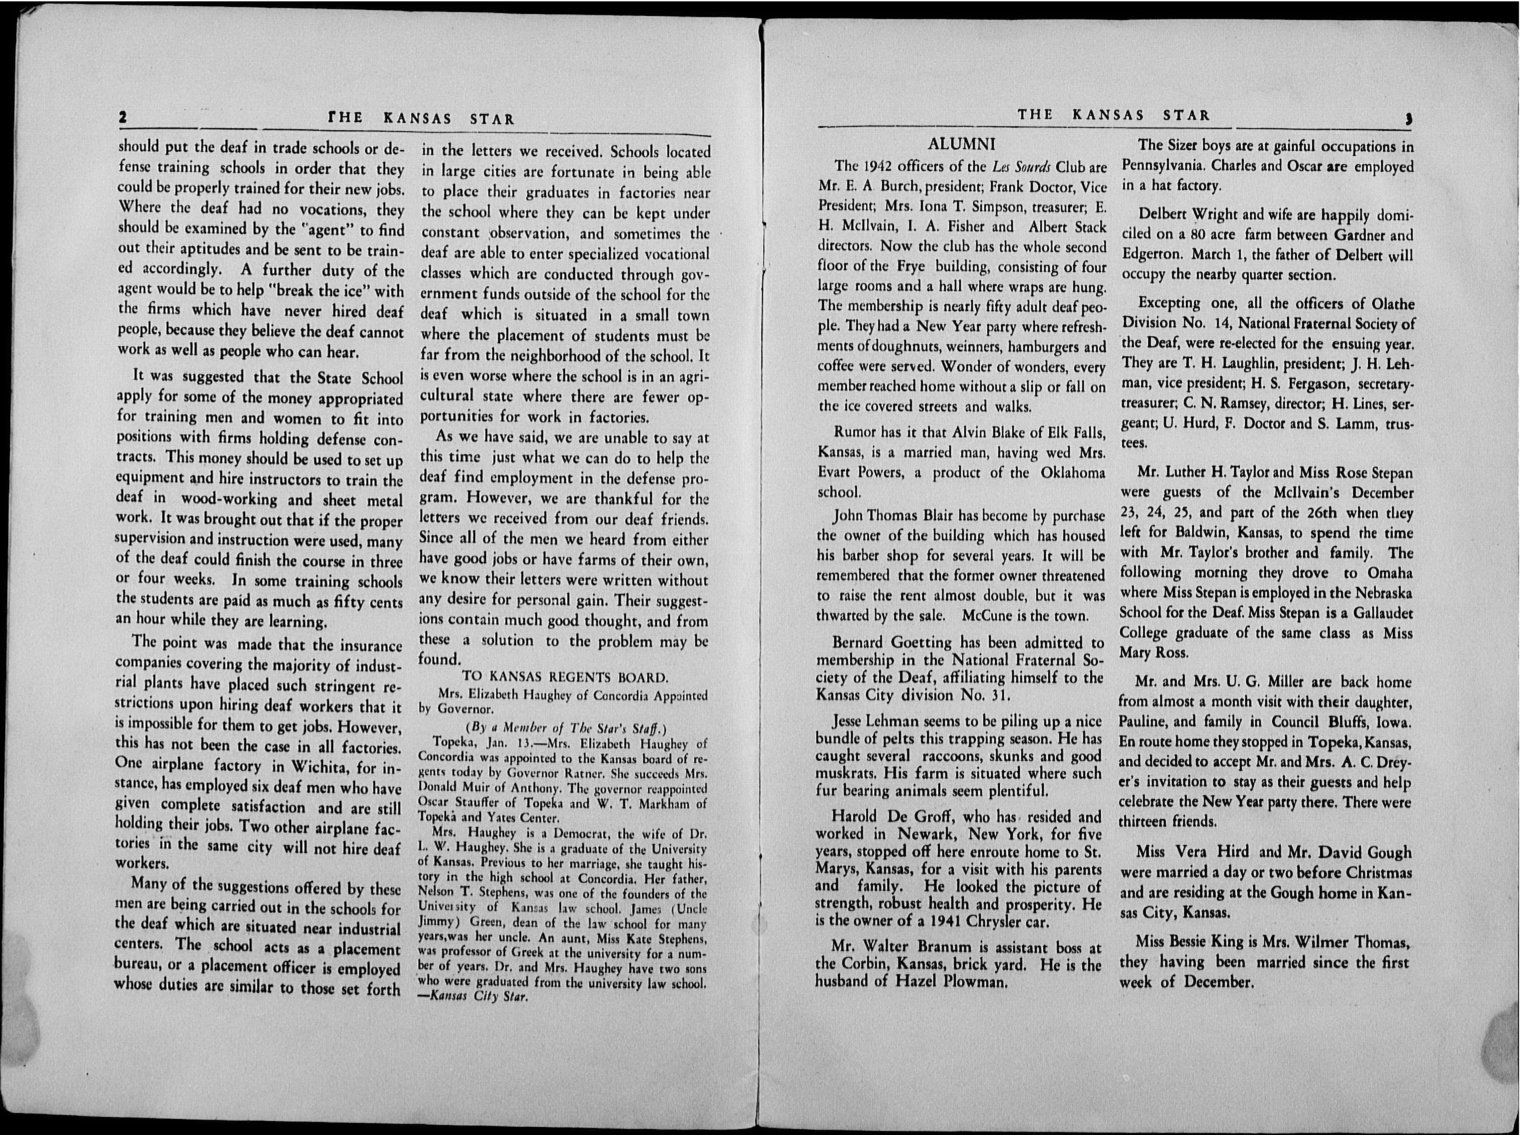 The Kansas Star, volume 56, number 5 - 2-3